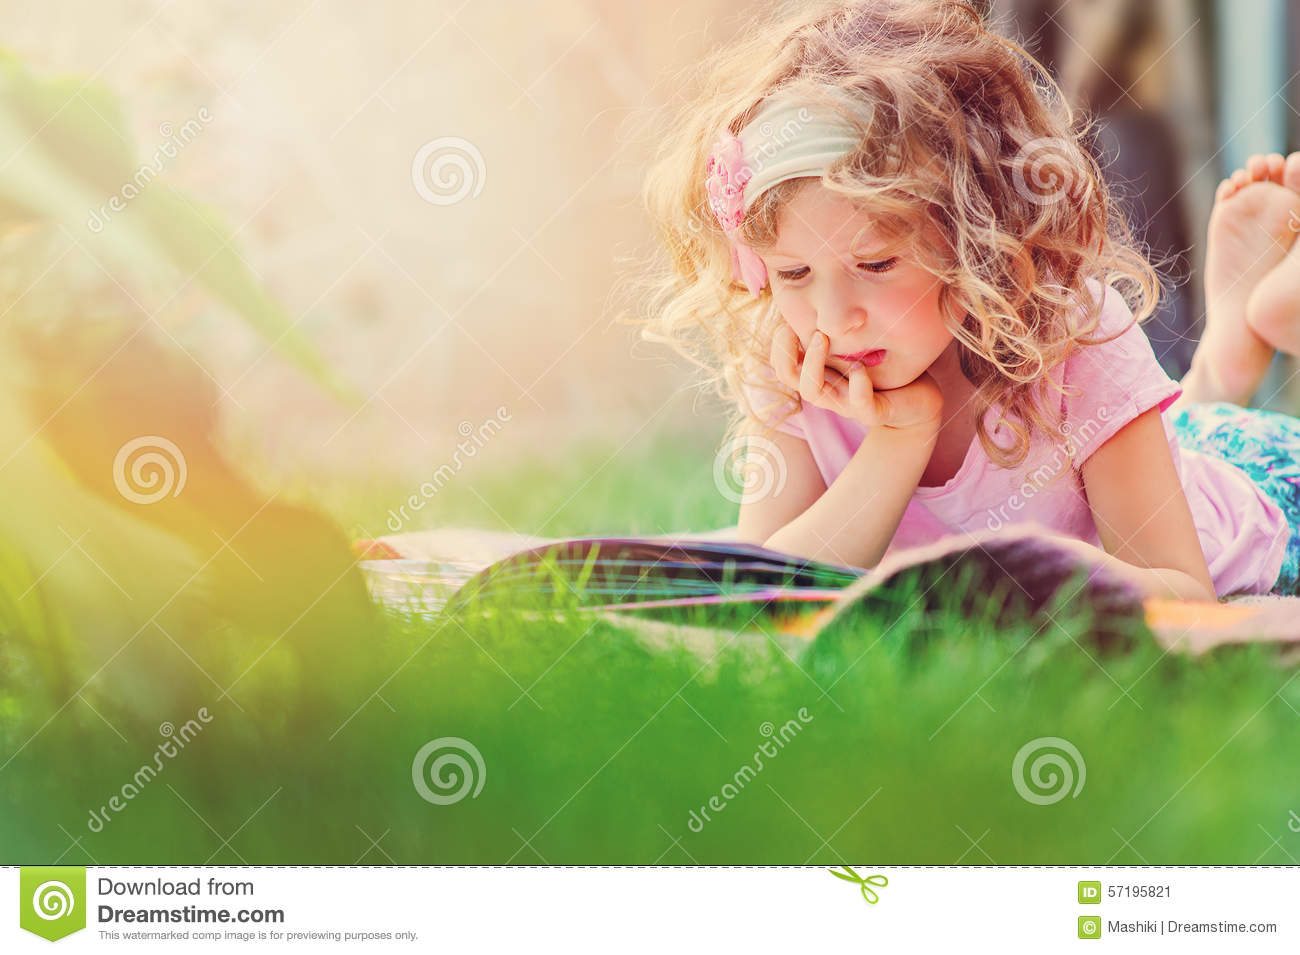 Cute child girl reading book and dreaming in summer sunny garden